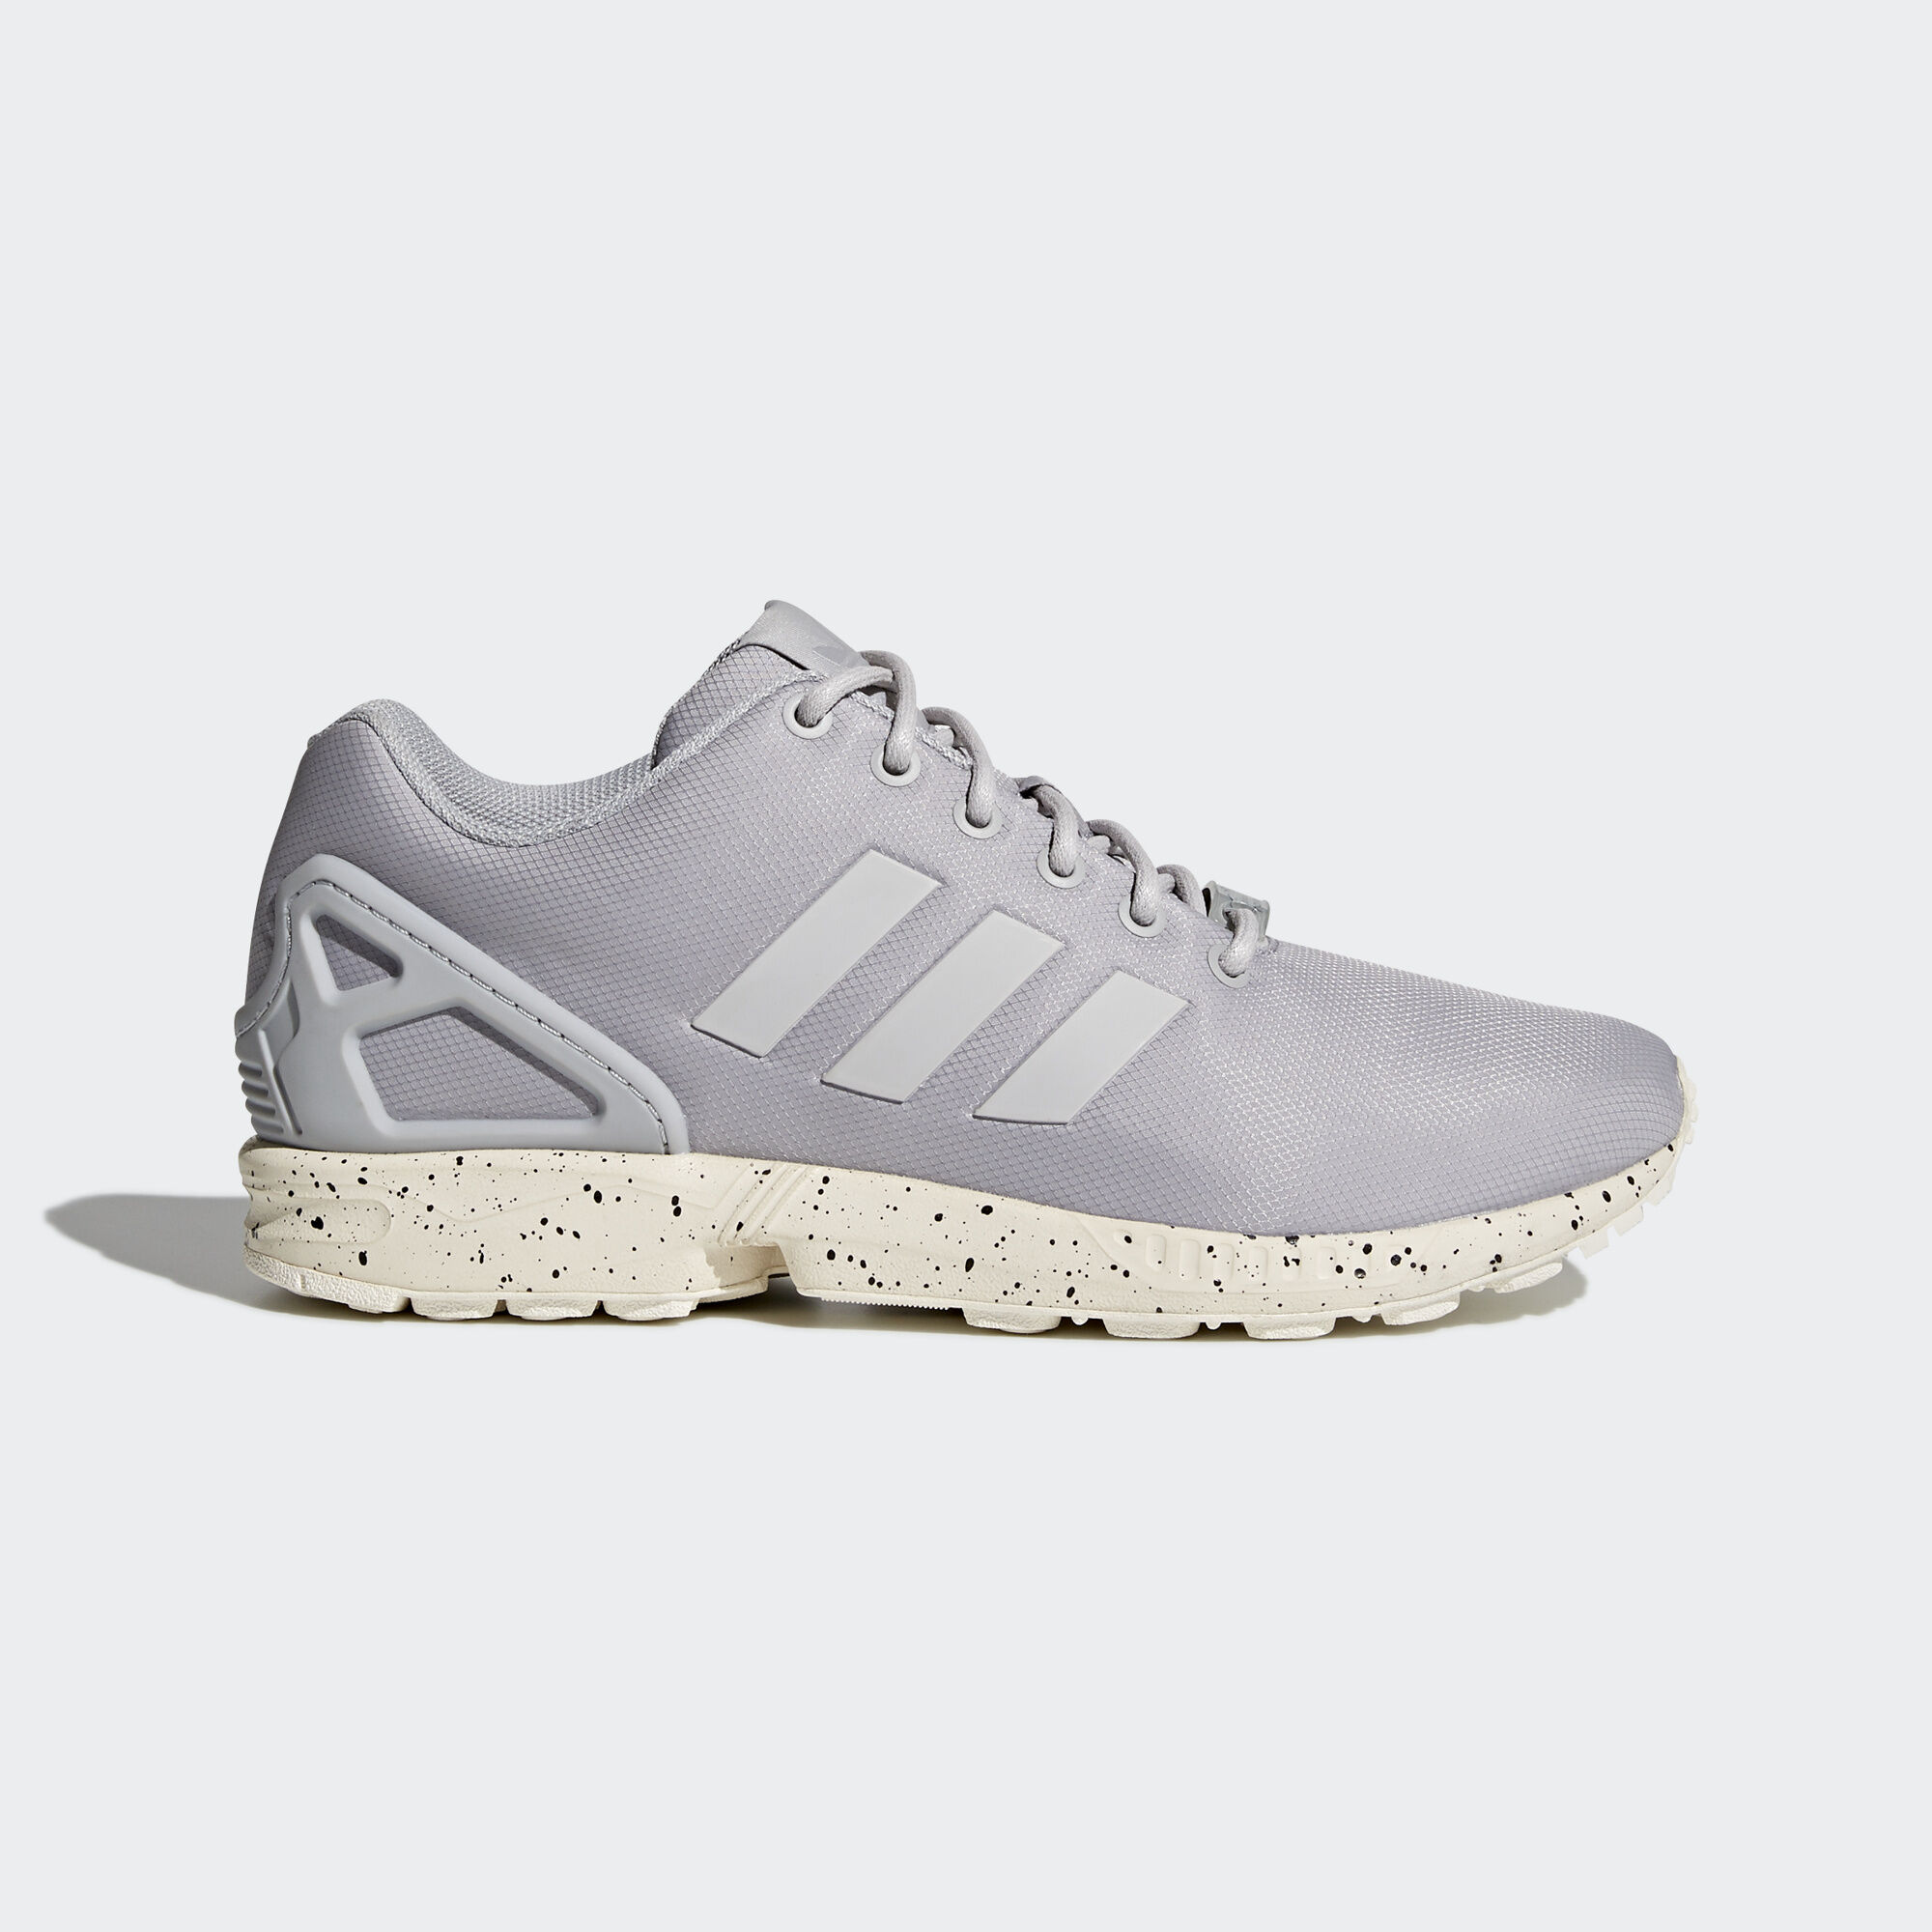 buy popular e4f19 66b8c Buy cheap Online - adidas zx flux white,Fine - Shoes ...